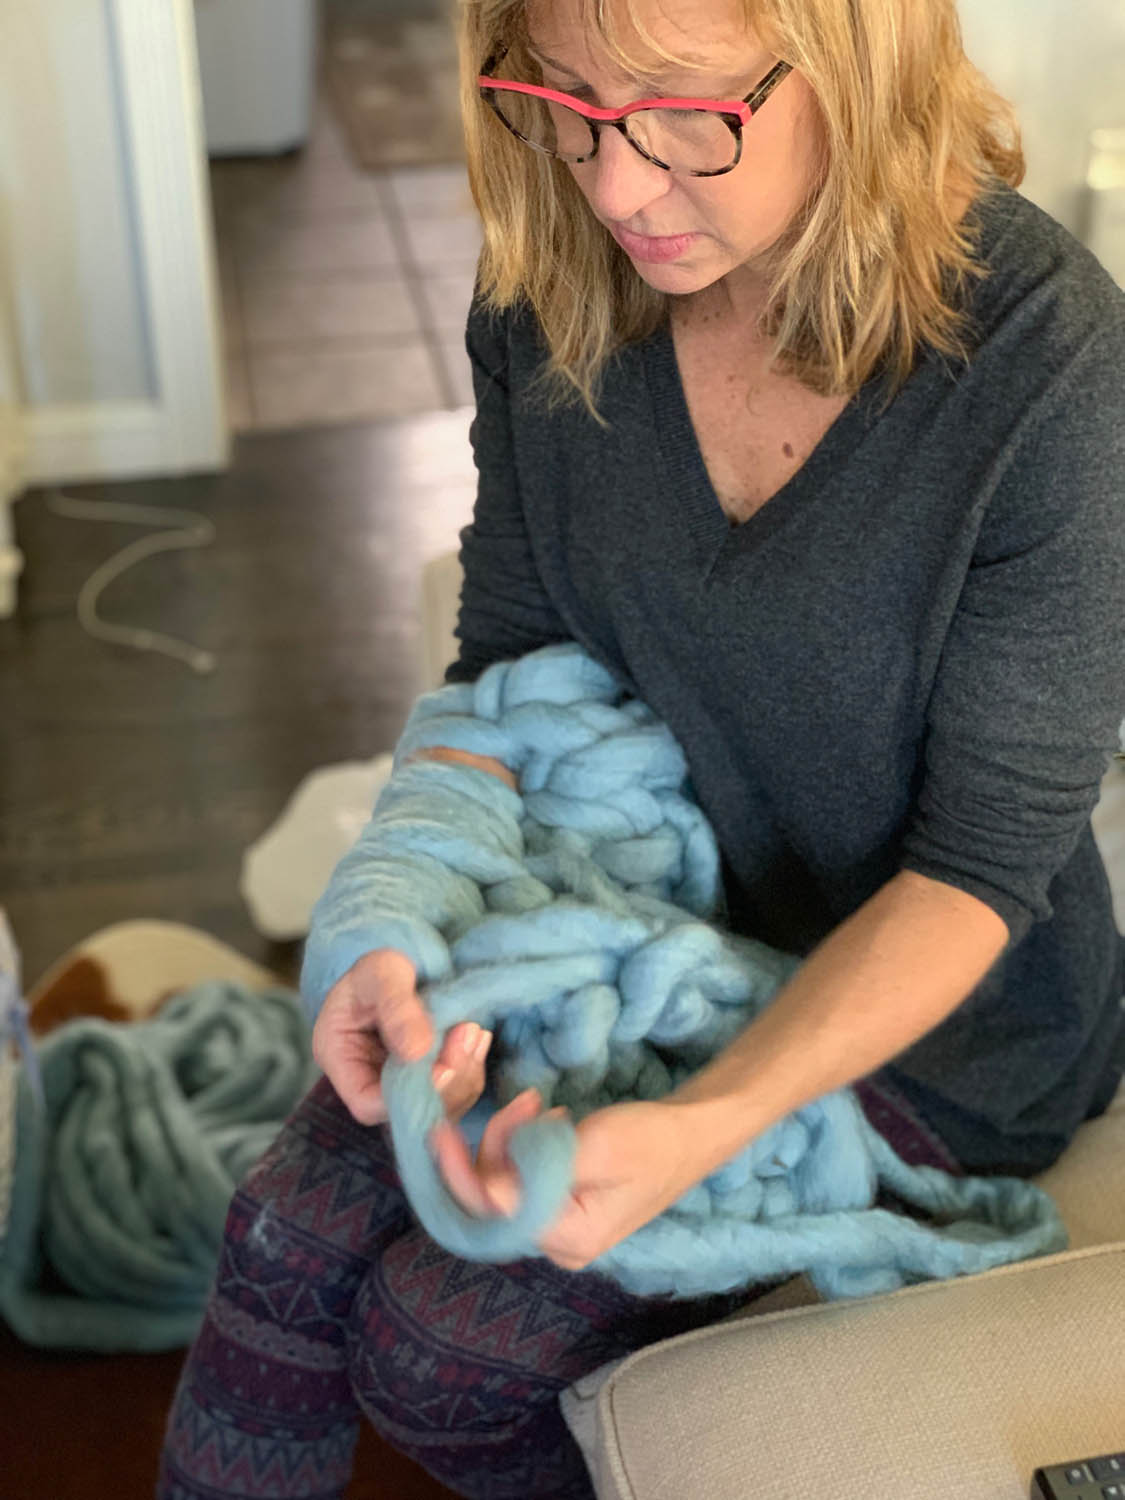 Woman working arm-knitted stitches for a jumbo yarn throw in 1 hour